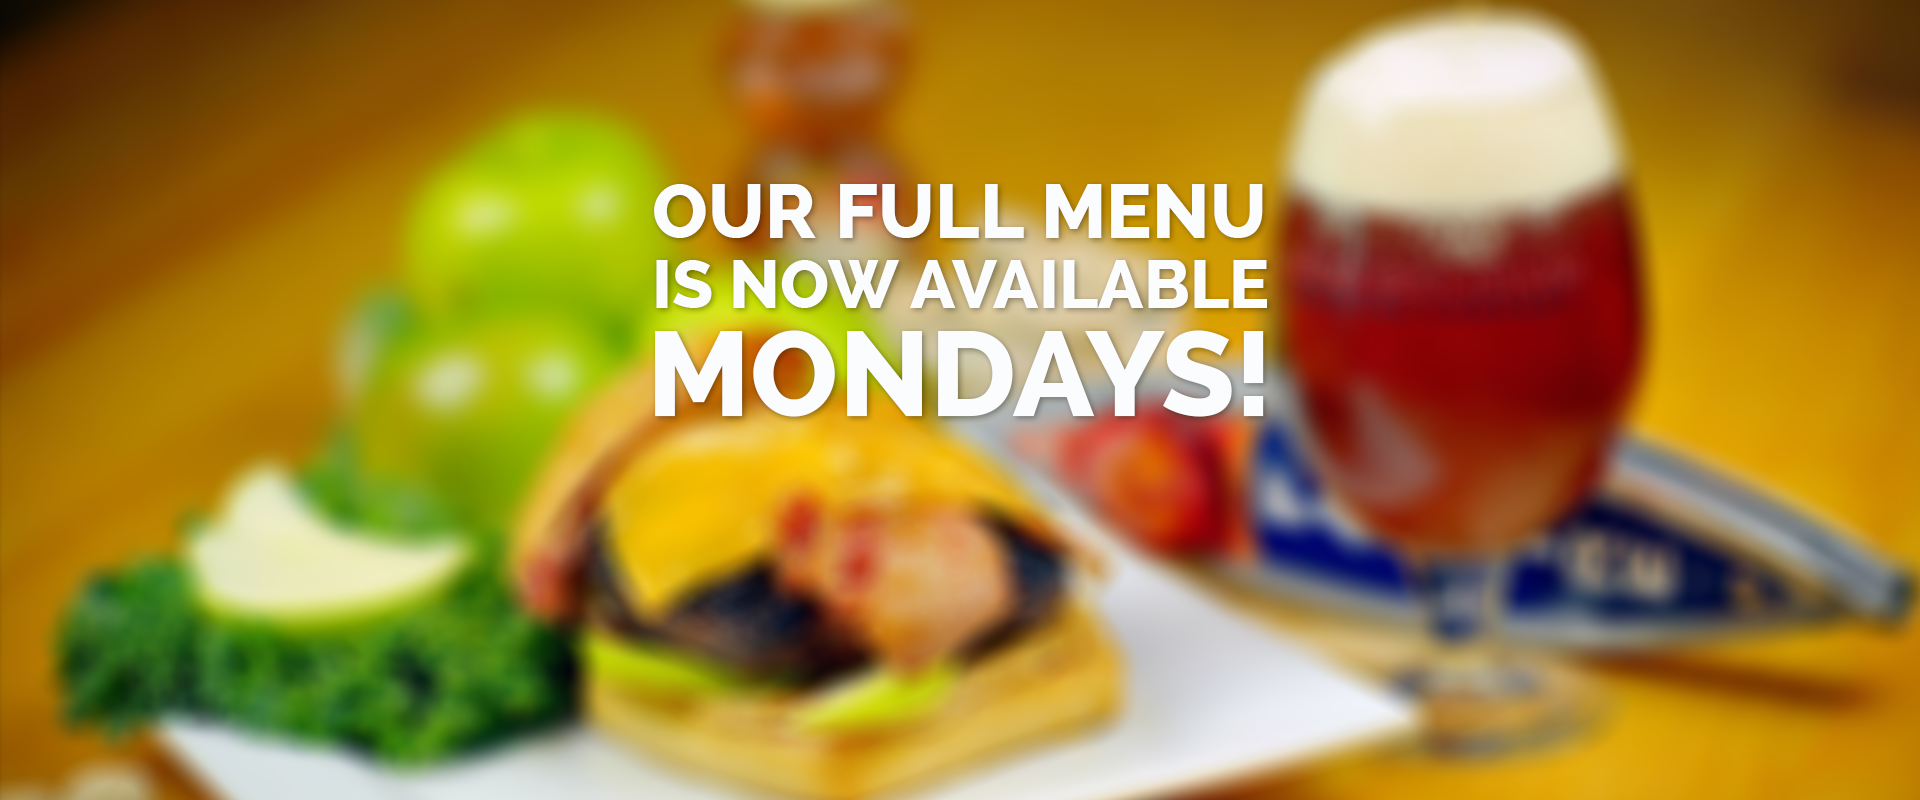 Now Serving full menu on Mondays!